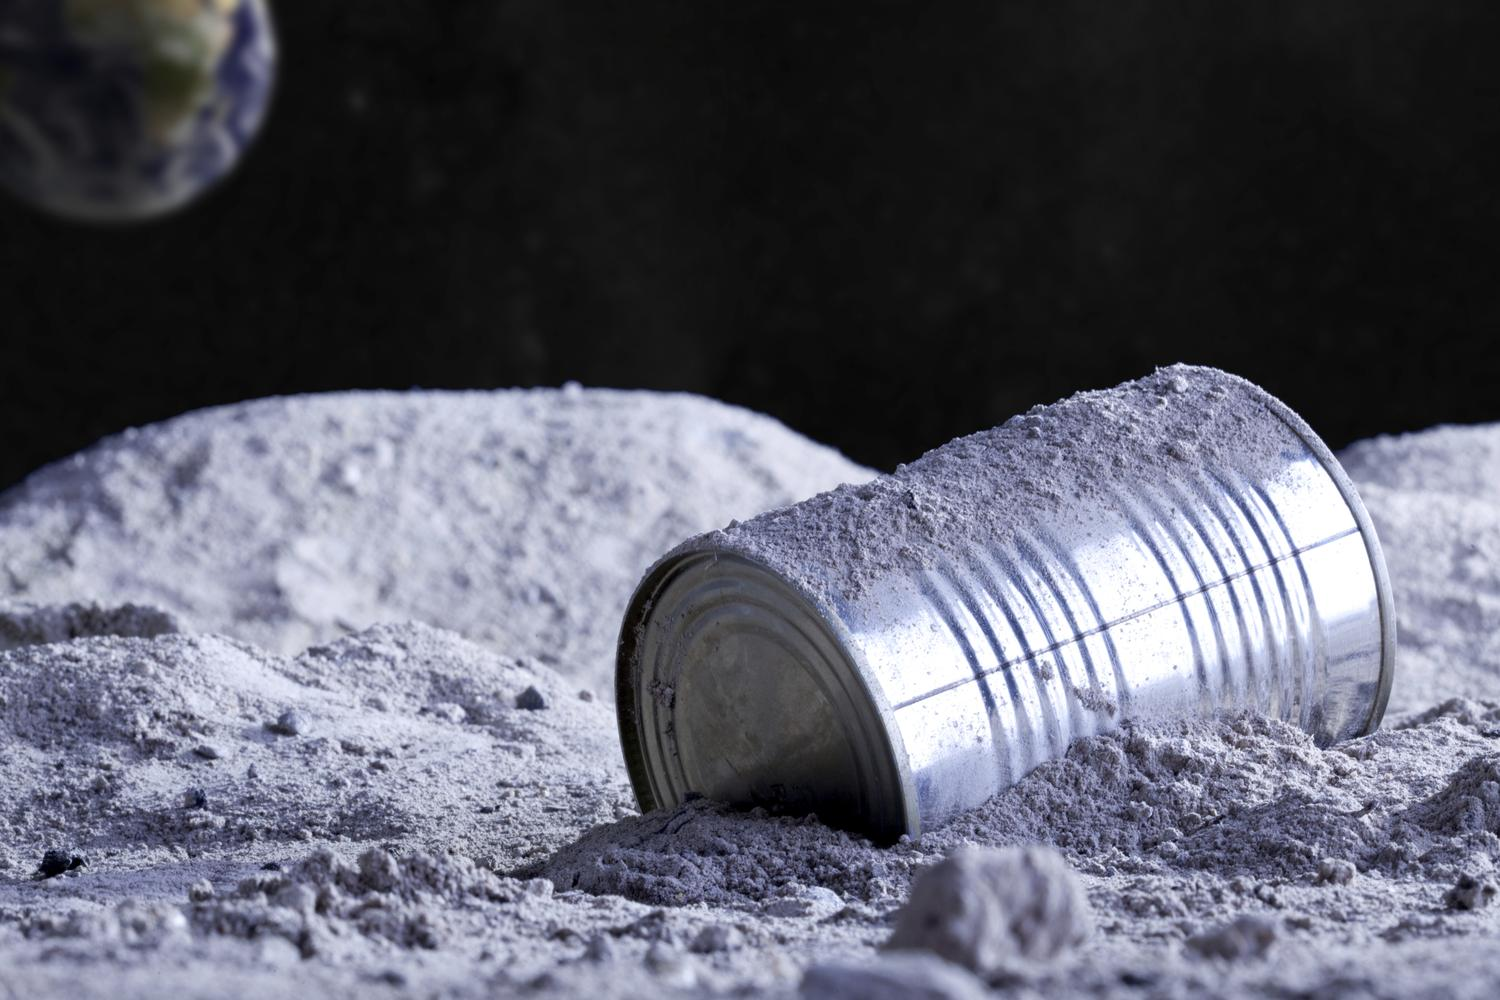 Galactic Garbage Can: There's 400,000 Pounds of Trash on The Moon | The Takeaway | WNYC